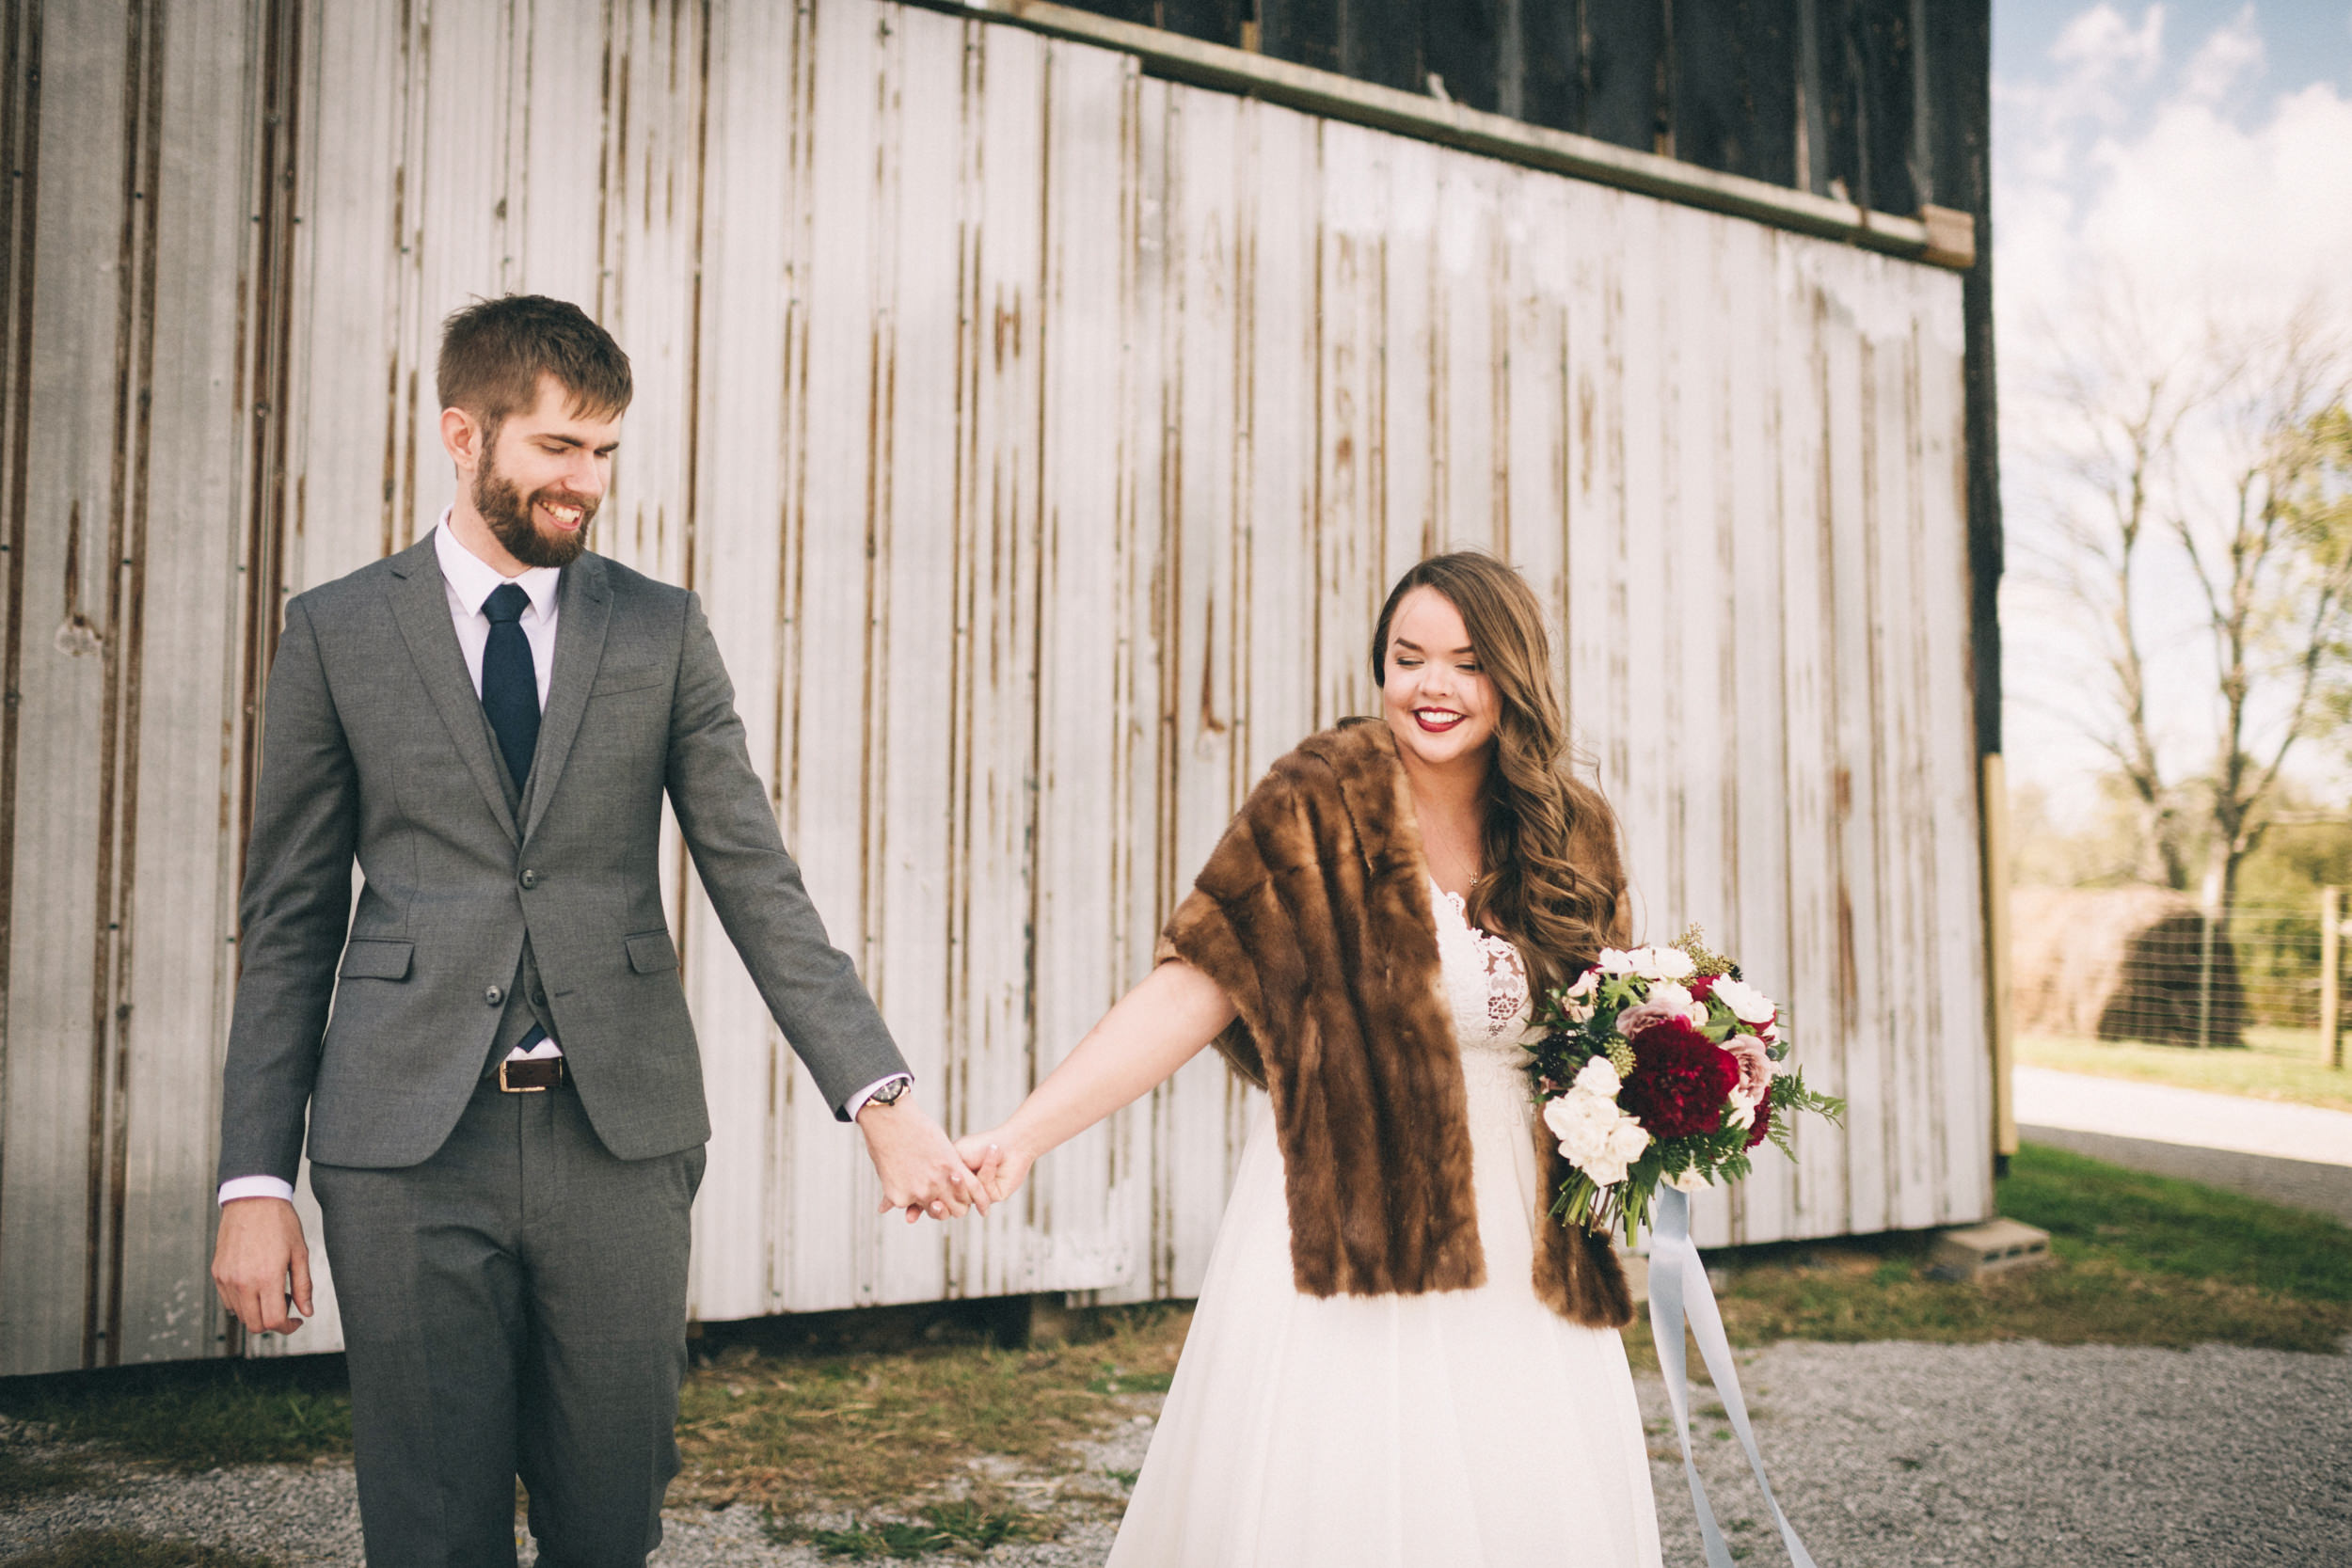 Maggie-Corey-Fall-Wedding-Barn-At-Twin-Lakes-Louisville-By-Kentucky-Wedding-Elopement-Photographer-Sarah-Katherine-Davis-Photography-200edit.jpg